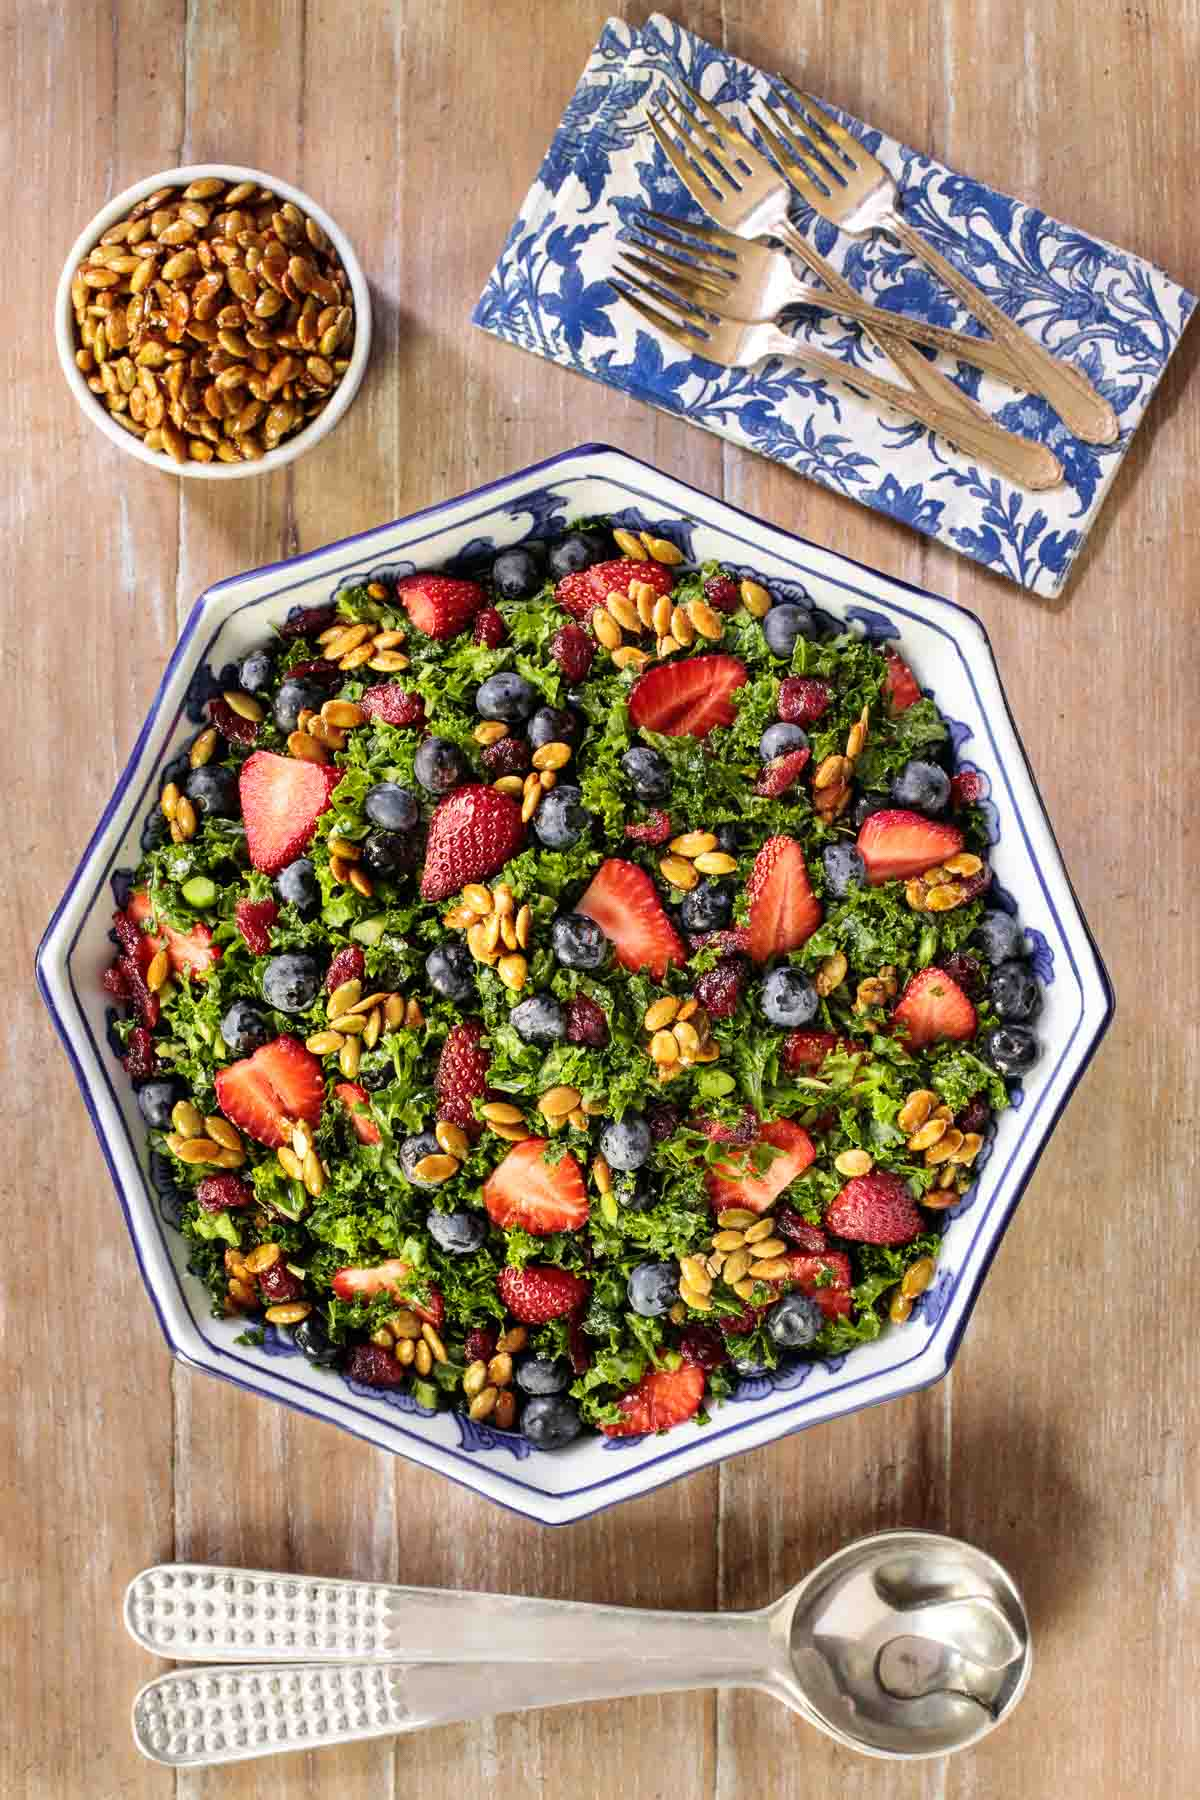 Overhead vertical photo of Strawberry Kale Salad on a wooden table with a blue and white patterned napkin.